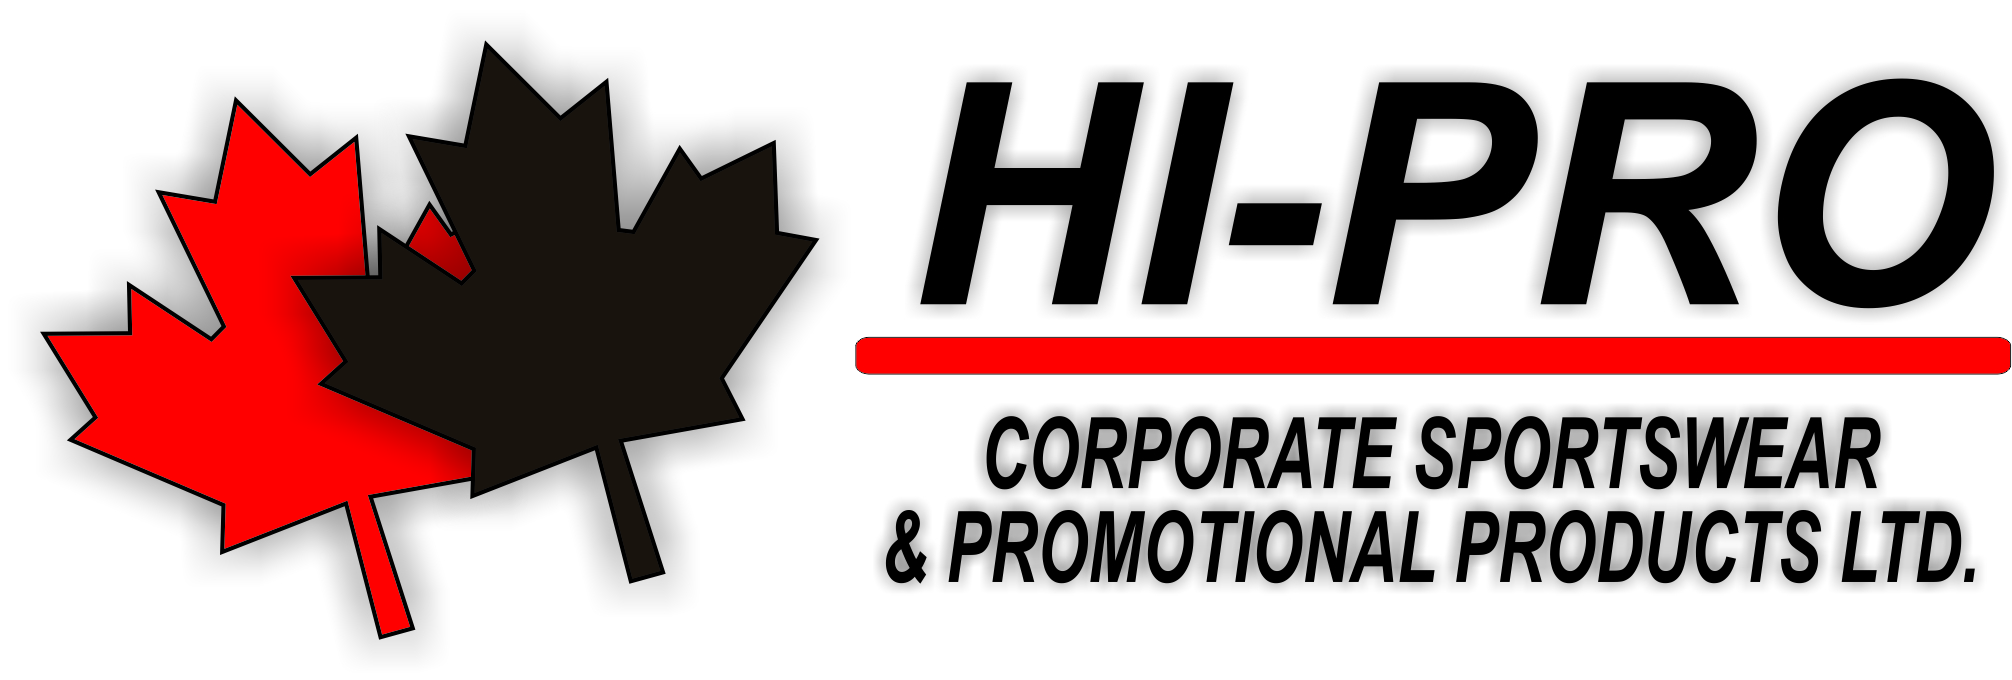 Hi Pro Corporate Sportswear and Promotional Products logo